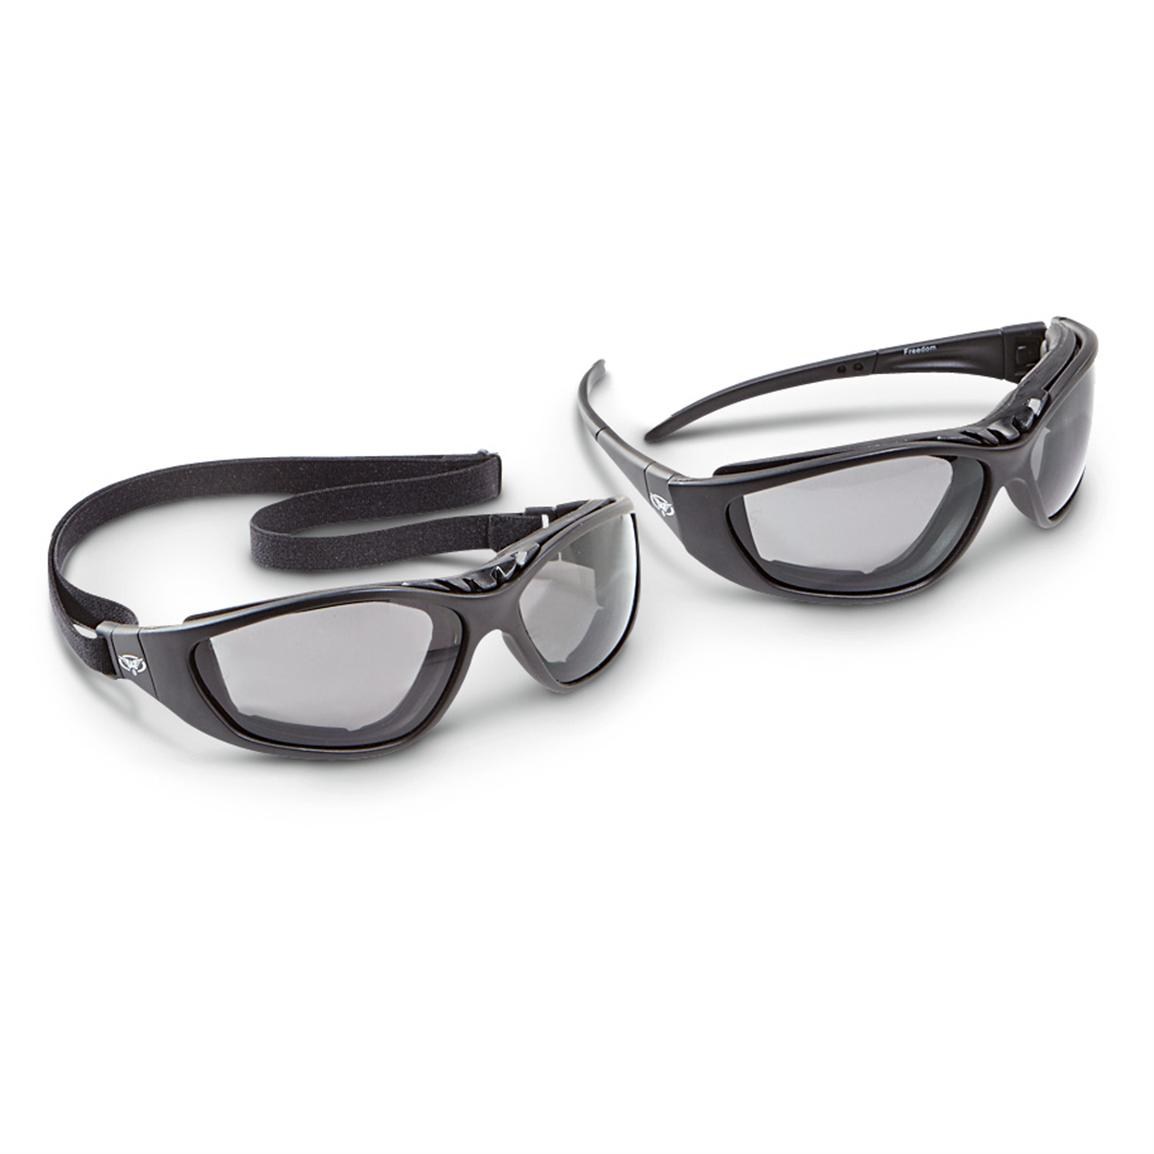 2 Freedom Shatterproof Riding Sunglasses, Smoke Lenses; Removable strap